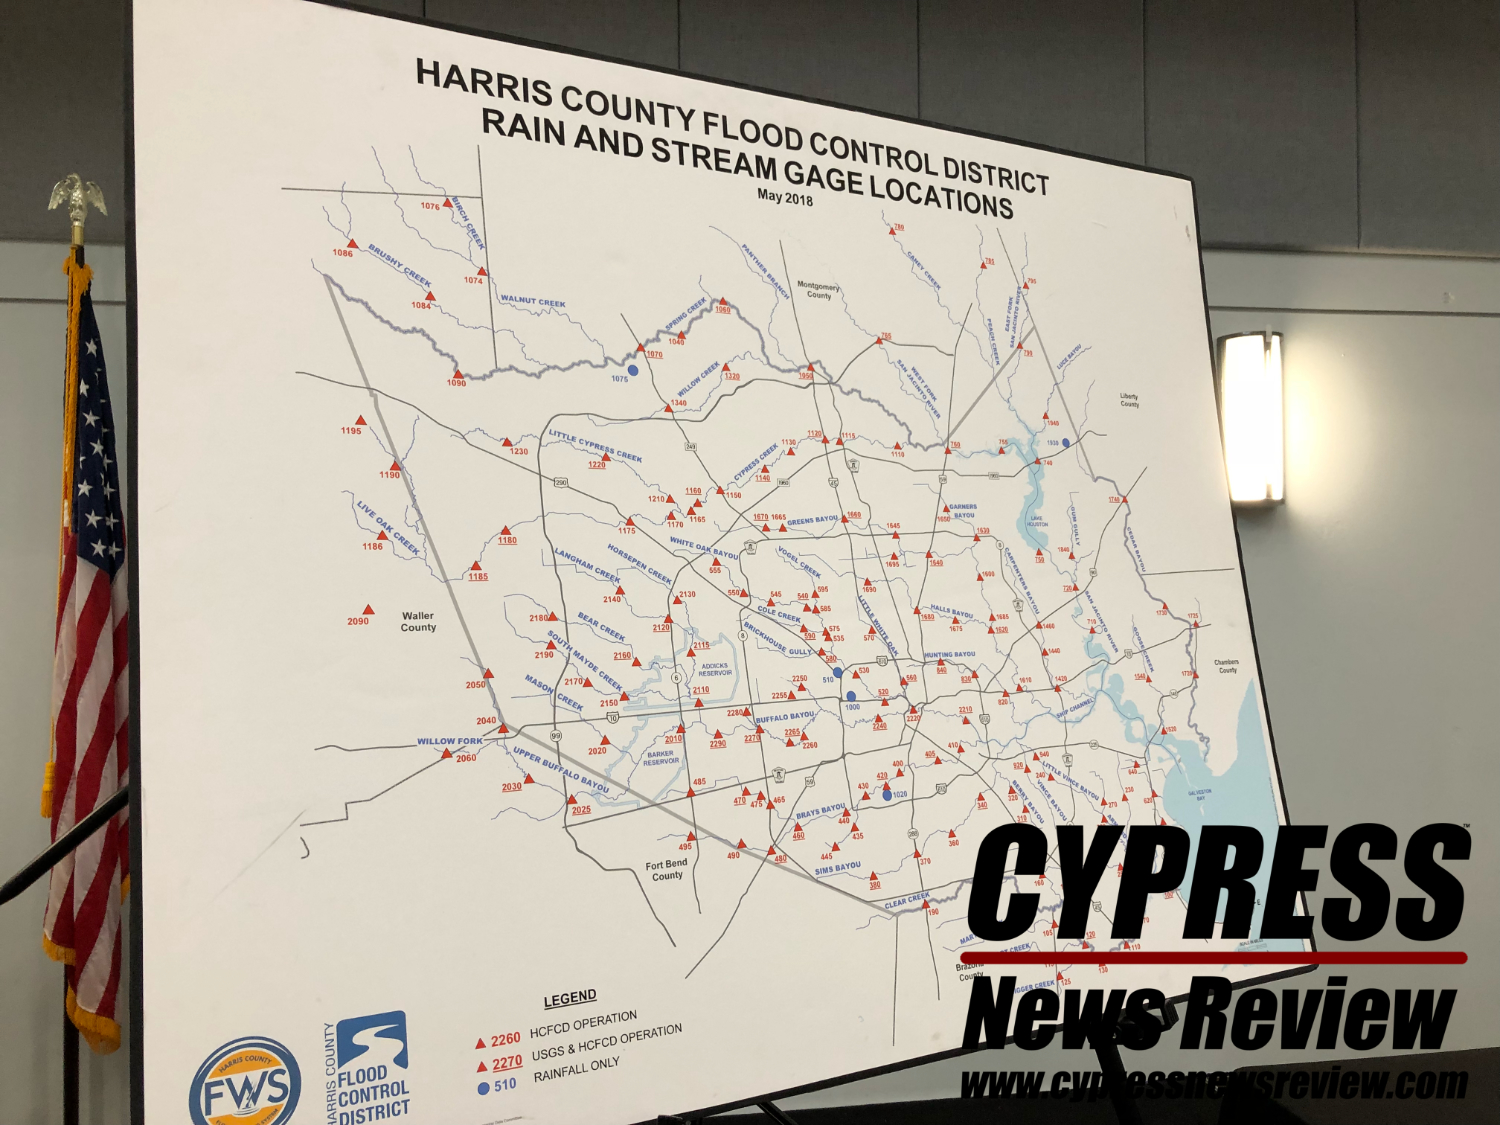 County leaders set to talk with Cypress about mile-long ... on map of rivergate, map of fairview, map of waters edge, map of maplewood, map of lakeside, map of centerville, map of westfield, map of riverdale, map of san marcos river, map of wekiva, map of lamar, map of riverside, map of park place, map of summerfield, map of spring lake, map of greenbriar, map of jacobs well, map of riverbend, map of downtown bradenton, map of the orange river,